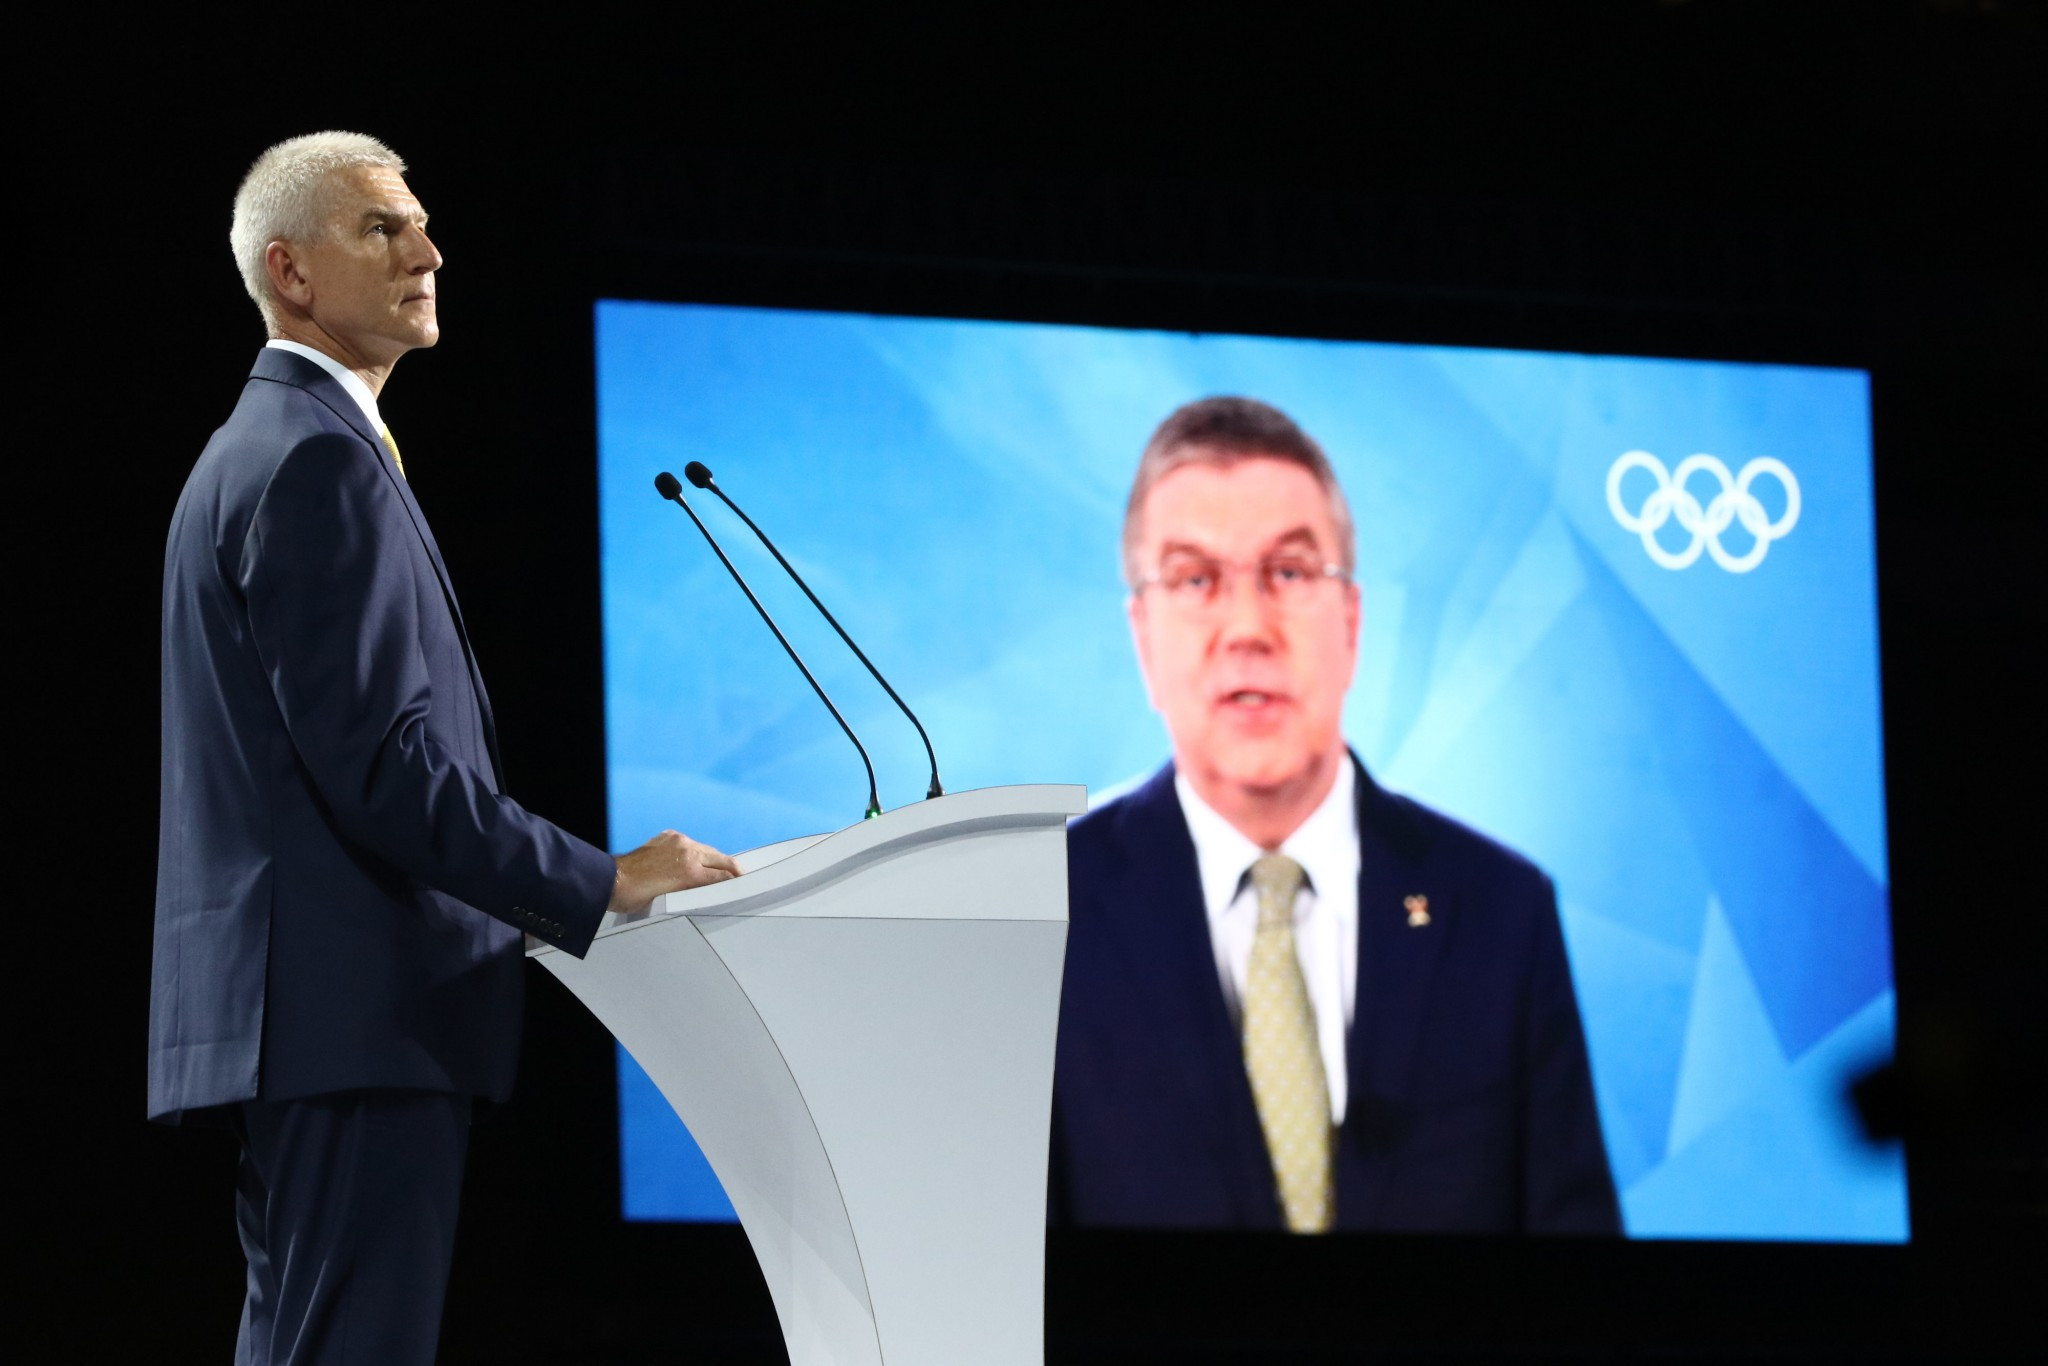 IOC President encourages athletes to make most of opportunities at Taipei 2017